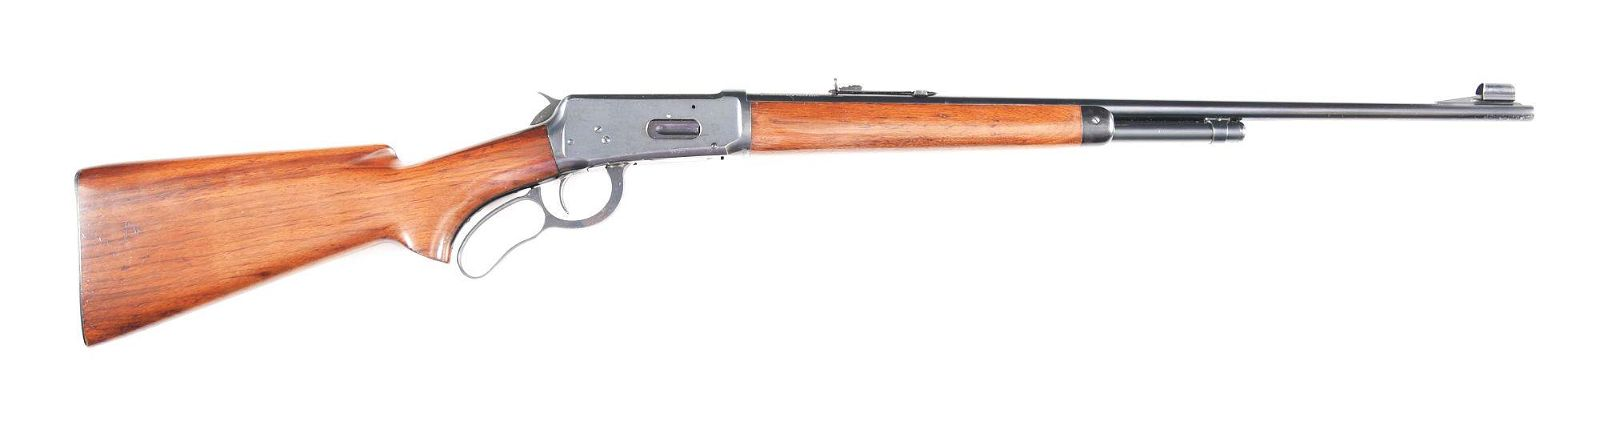 (C) WINCHESTER MODEL 64 LEVER ACTION RIFLE IN .25-35